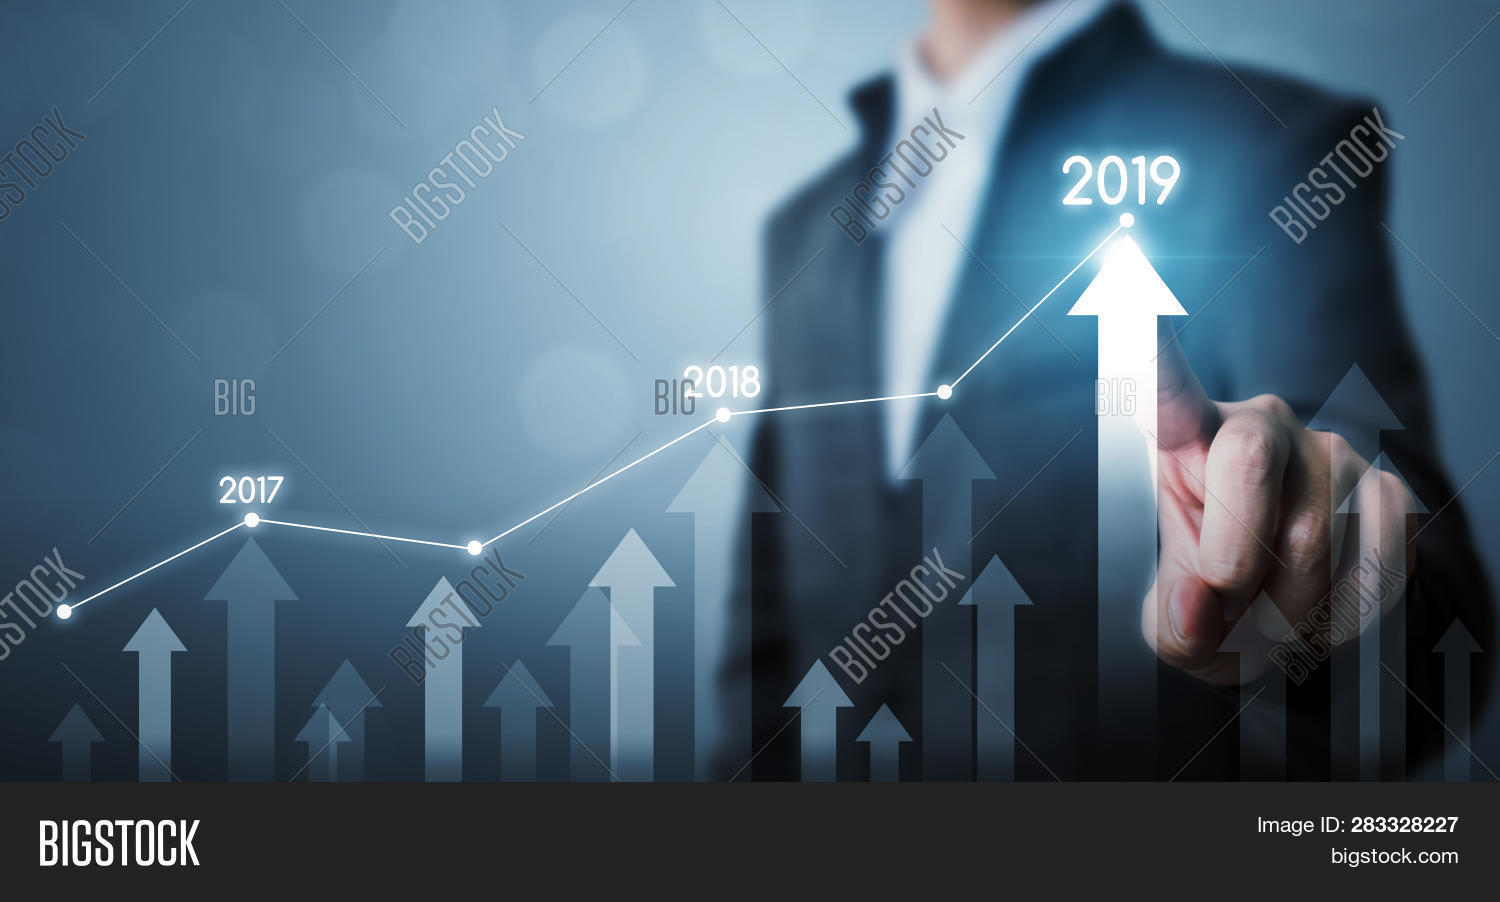 2019,achievement,advice,analysis,benefit,business,chart,company,concept,development,diagram,economic,education,efficiency,excellence,financial,goal,graph,grow,growth,hand,increase,industry,investment,leadership,man,management,manager,market,method,money,opportunity,performance,plan,professional,profit,progress,project,report,revenue,sale,solution,statistic,stock,strategy,success,target,trend,turnover,virtual